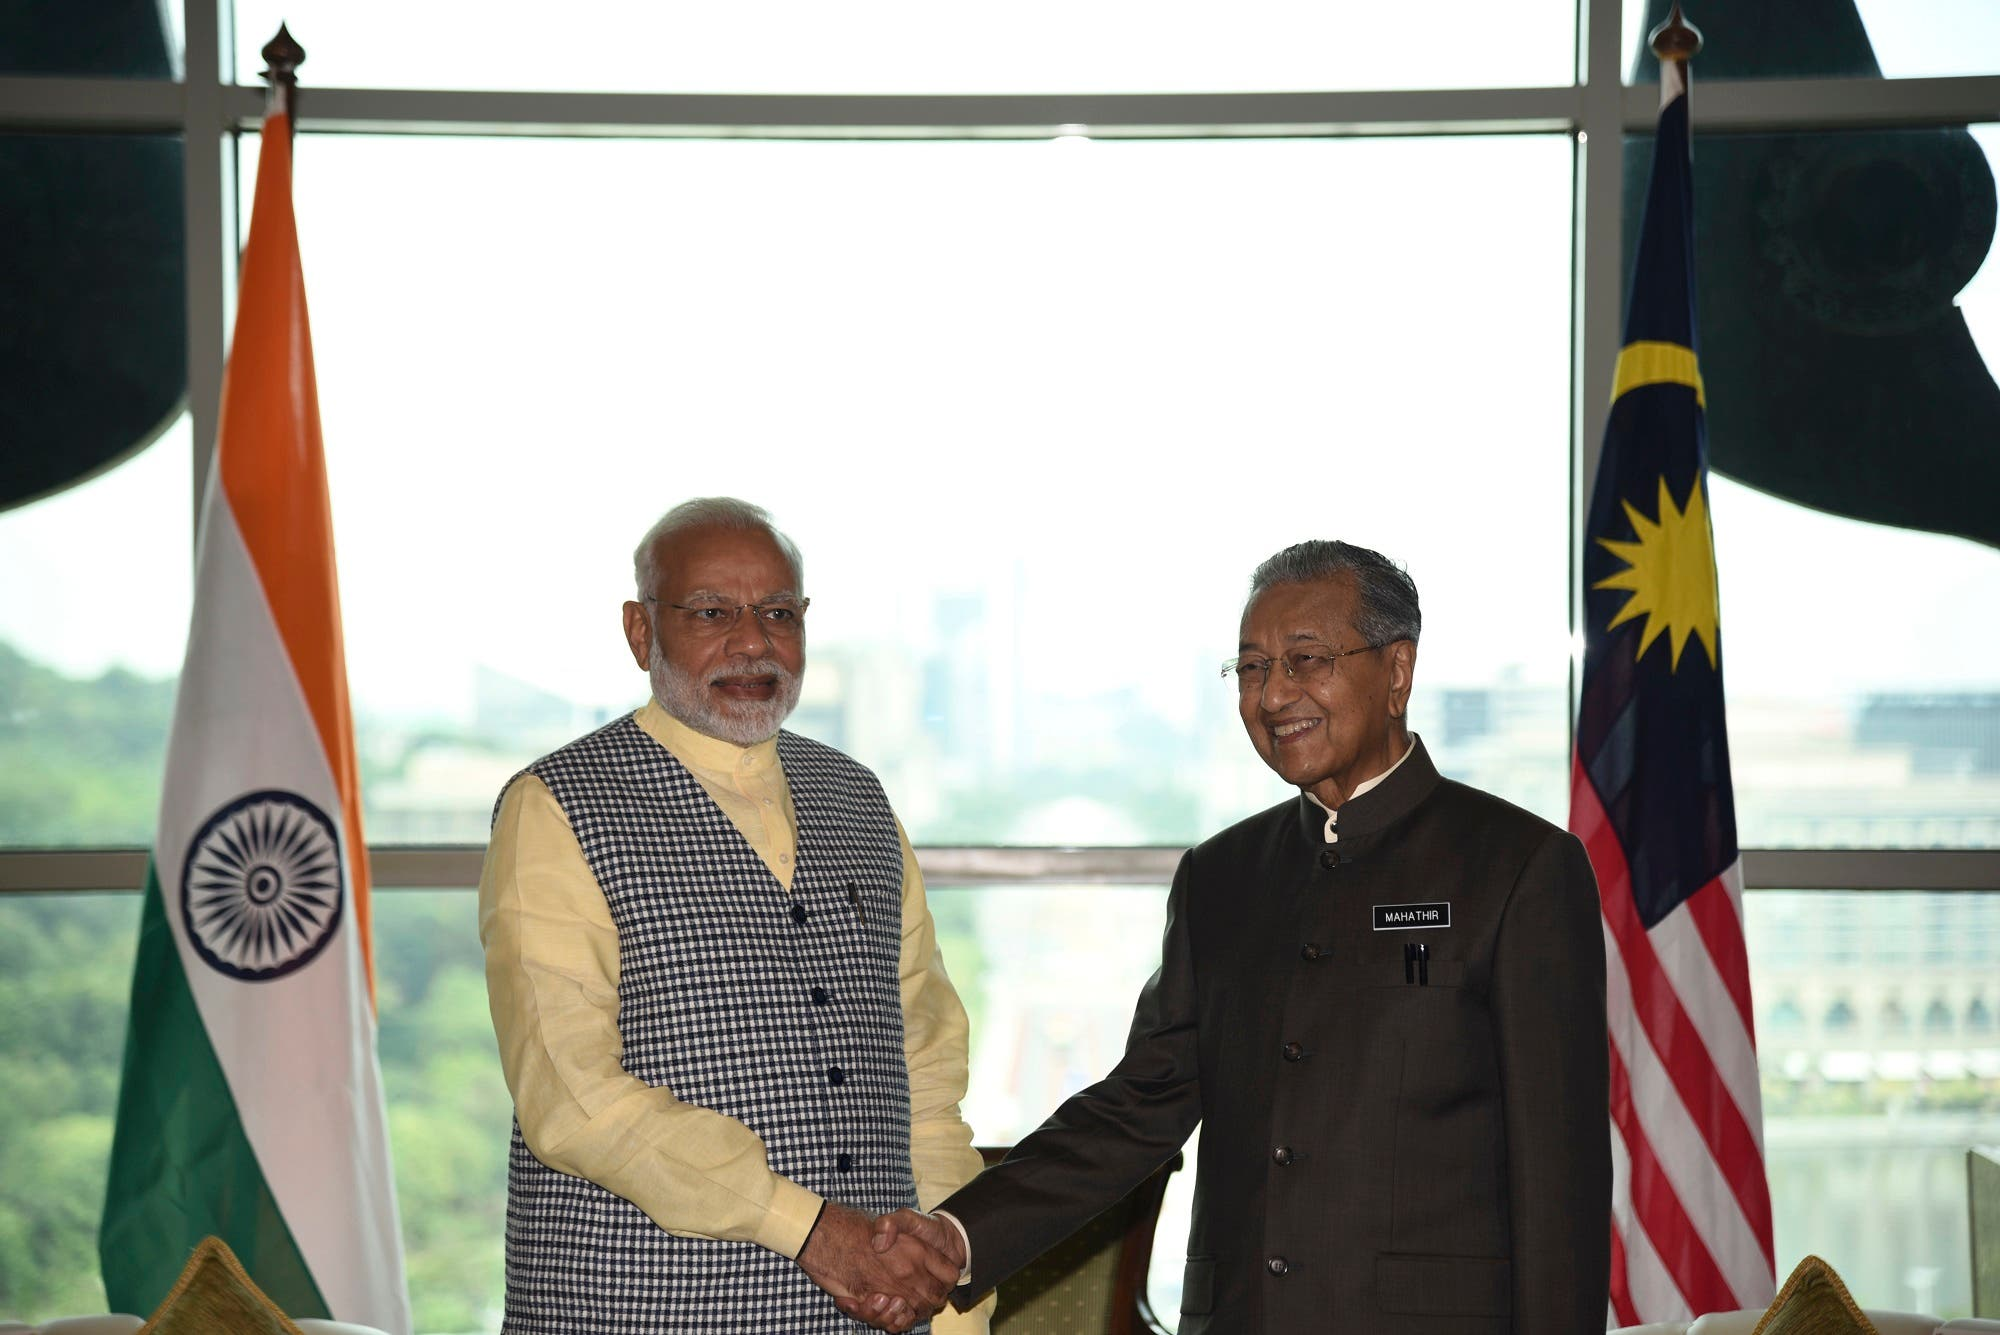 Prime Minister Narendra Modi, left, poses with Malaysia's Prime Minister Mahathir Mohamad in Putrajaya, Malaysia, on May 31, 2018. (Malaysia Information Ministry via AP)